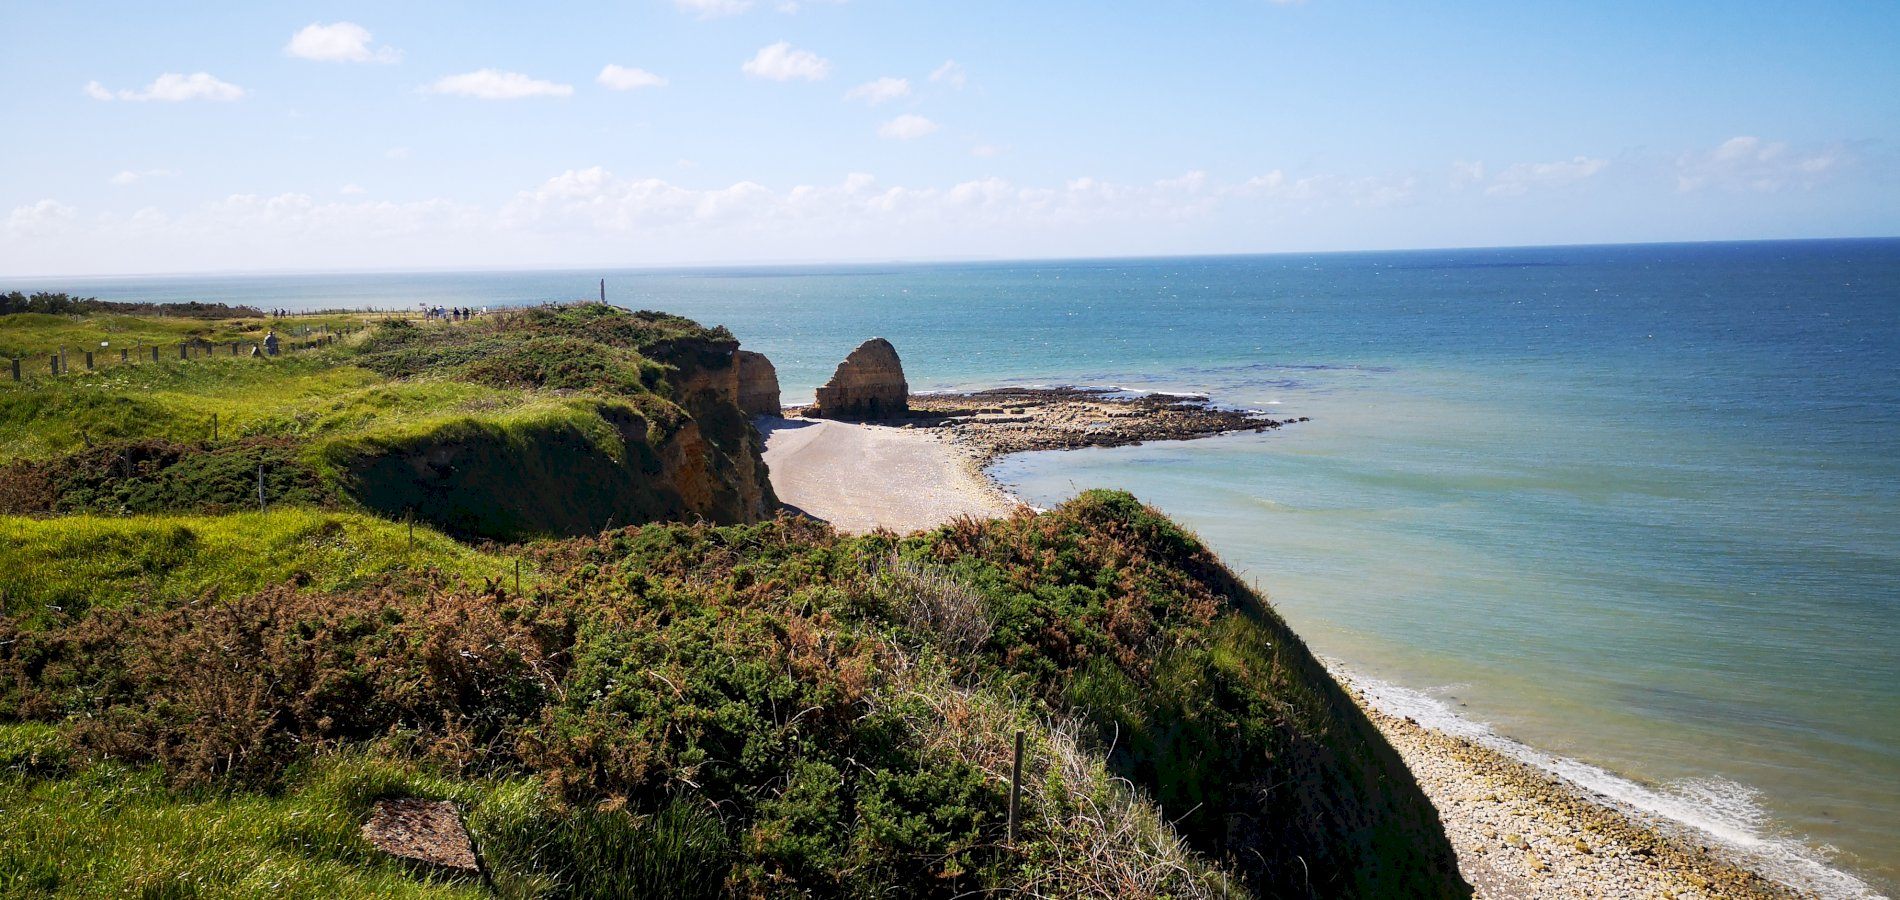 Ophorus Tours - Omaha Beach & Normandy D-DAY Sites Private Half Day Trip from Bayeux for 2 persons